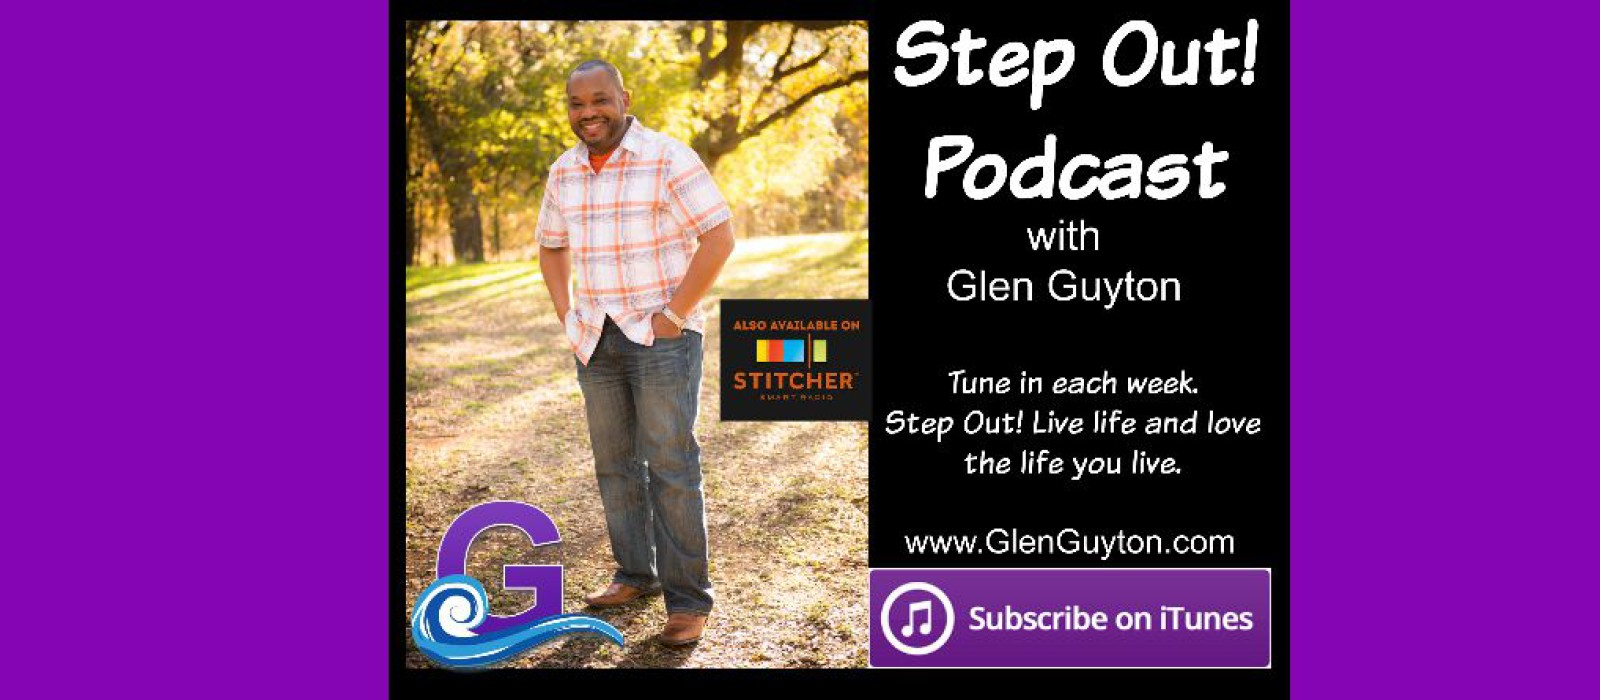 Episode 1: Welcome to the Step Out! Podcast